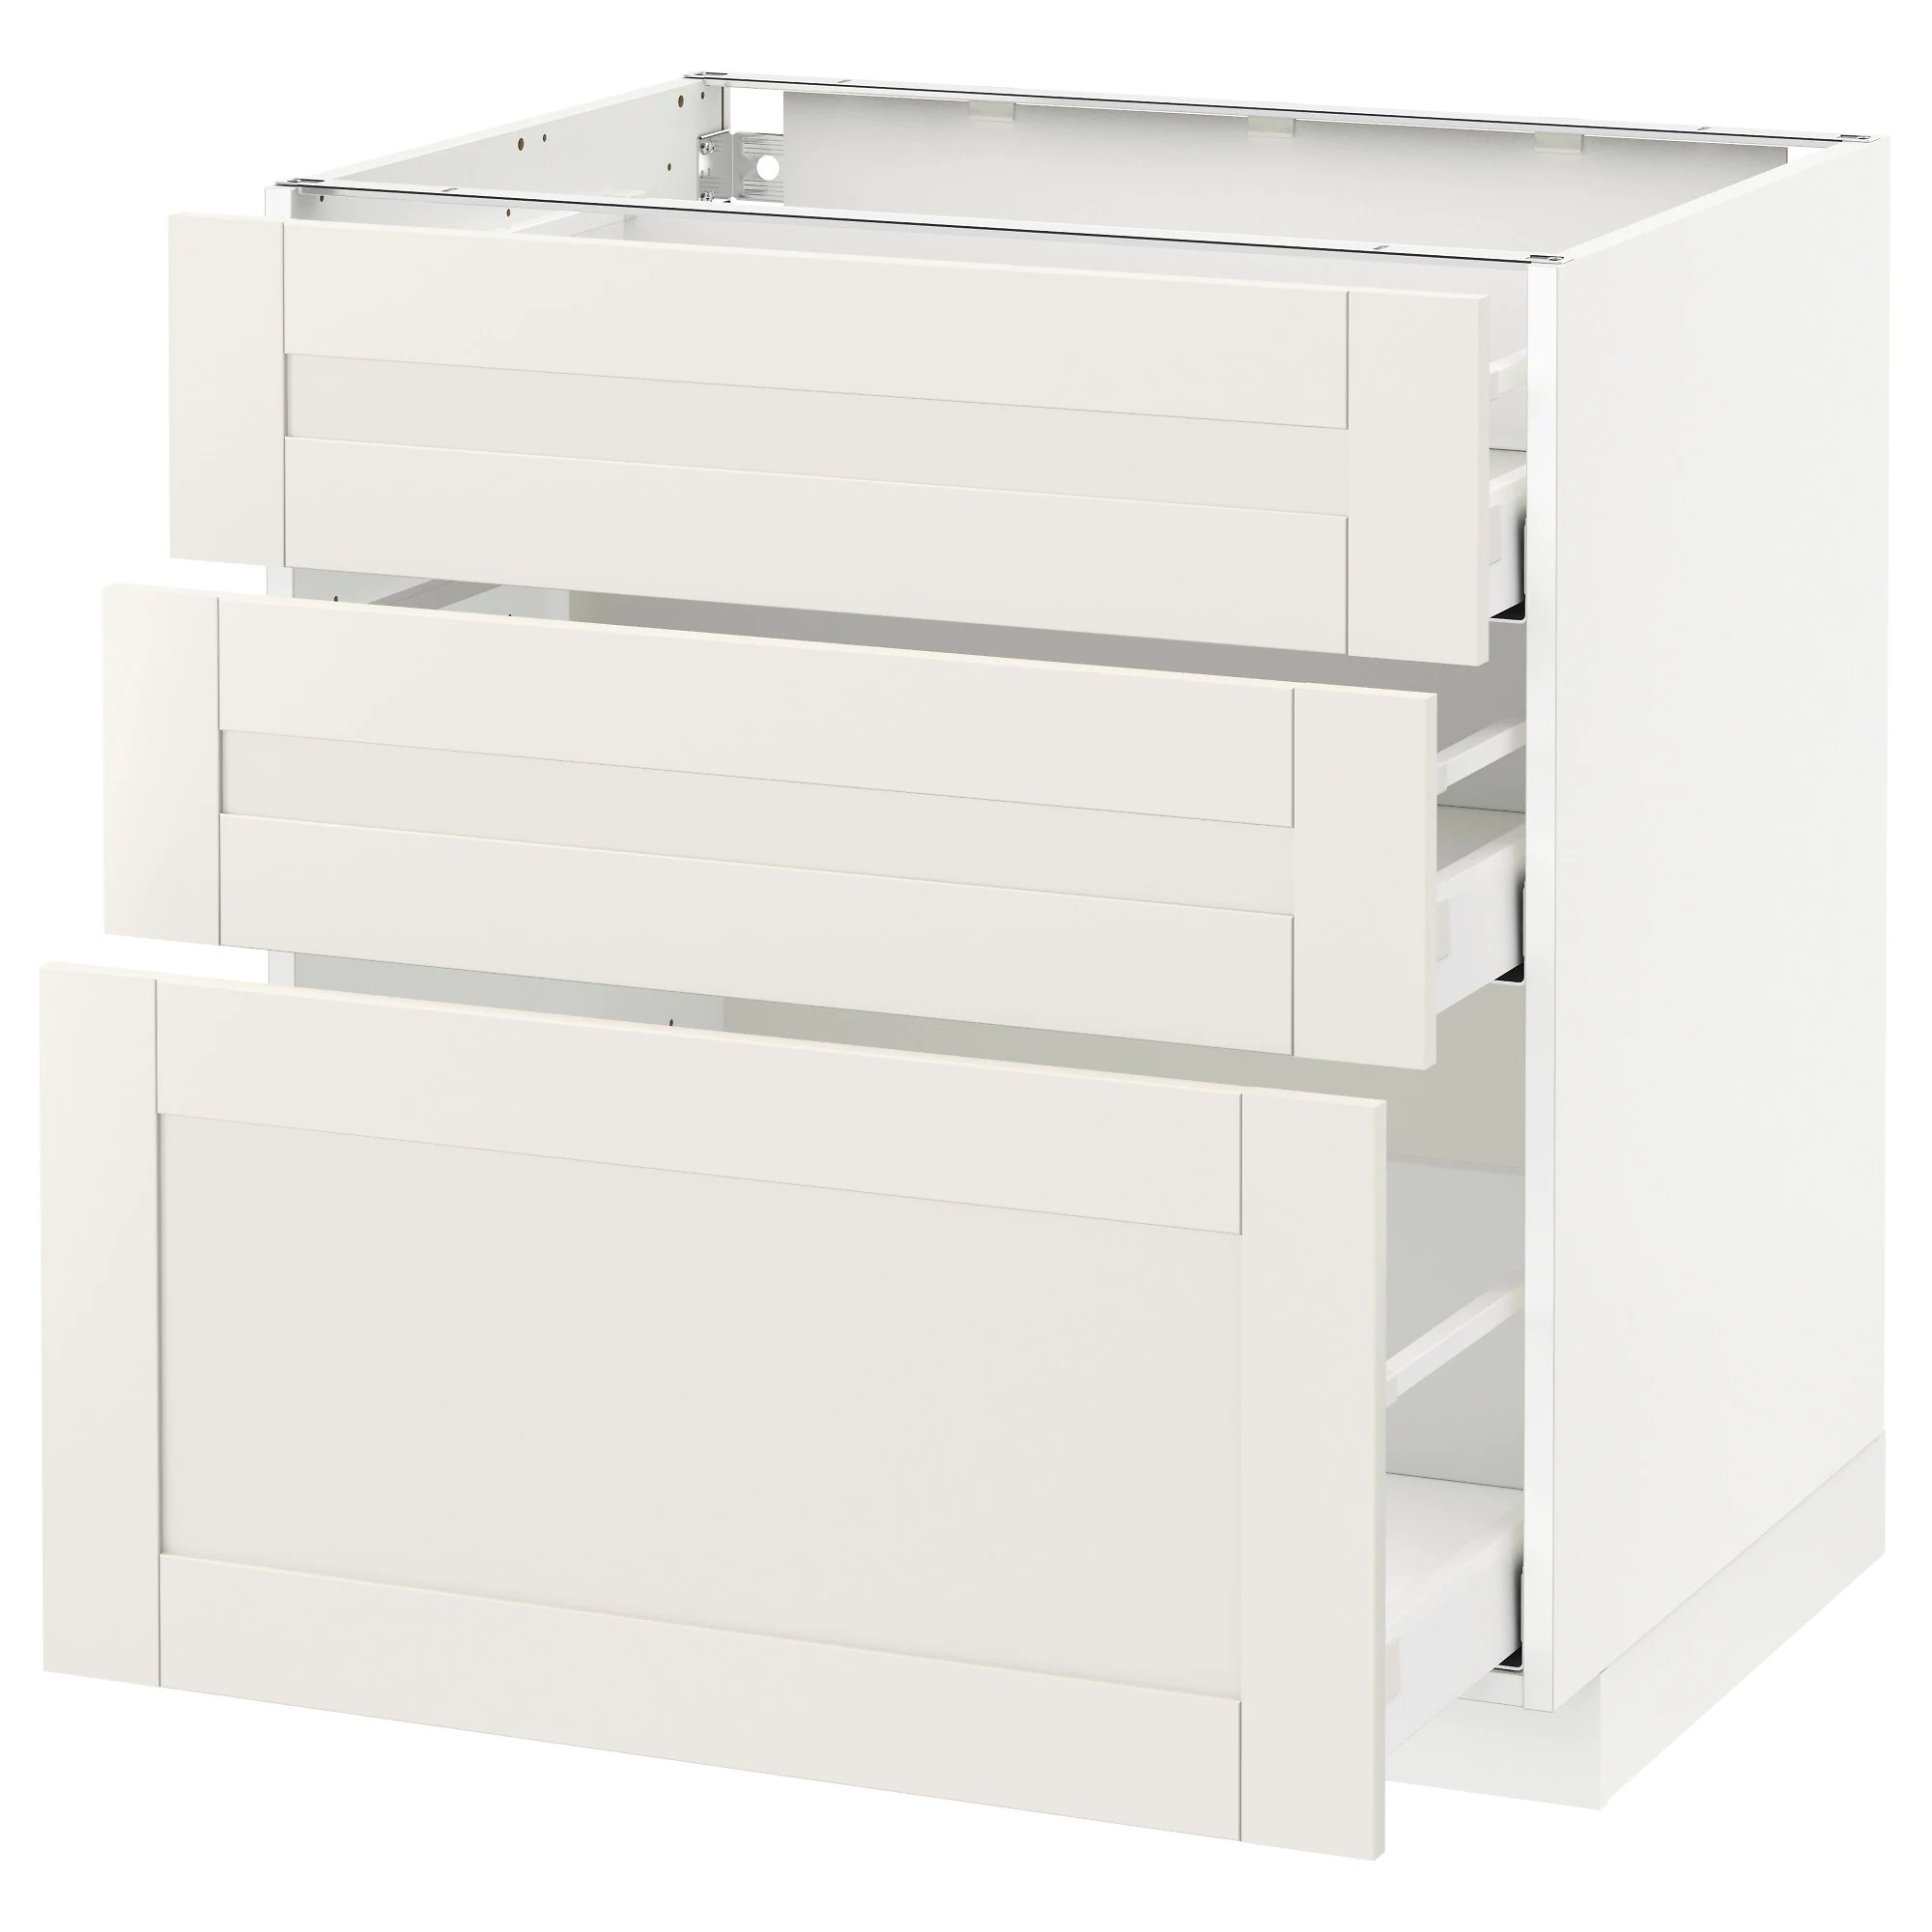 Ikea Sävedal Base Cabinet With 3 Drawers Metod White Maximera Sävedal White